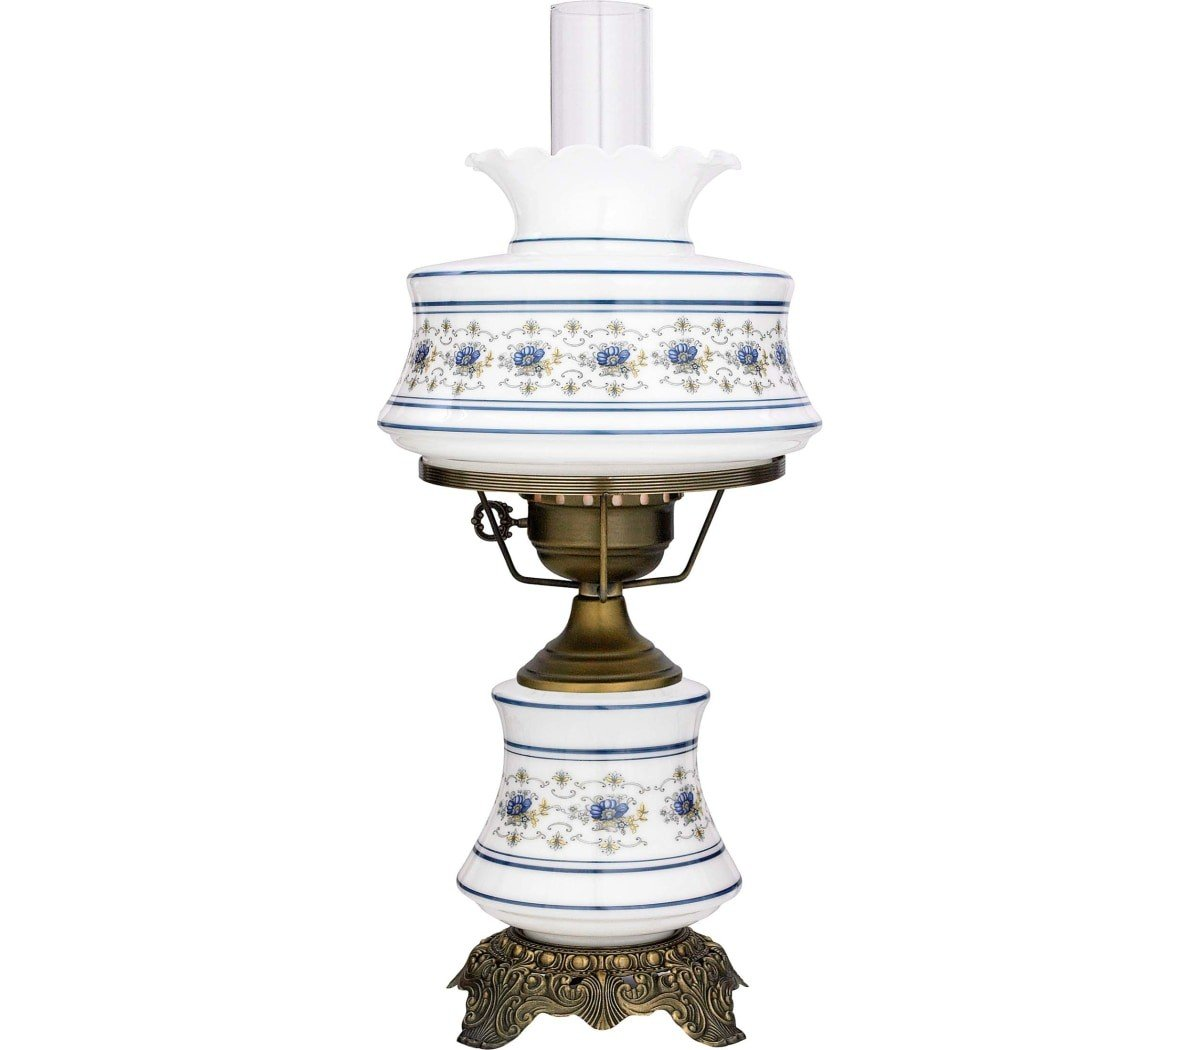 quoizel lighting abigail adams quoizel-abigail-adams-lamp